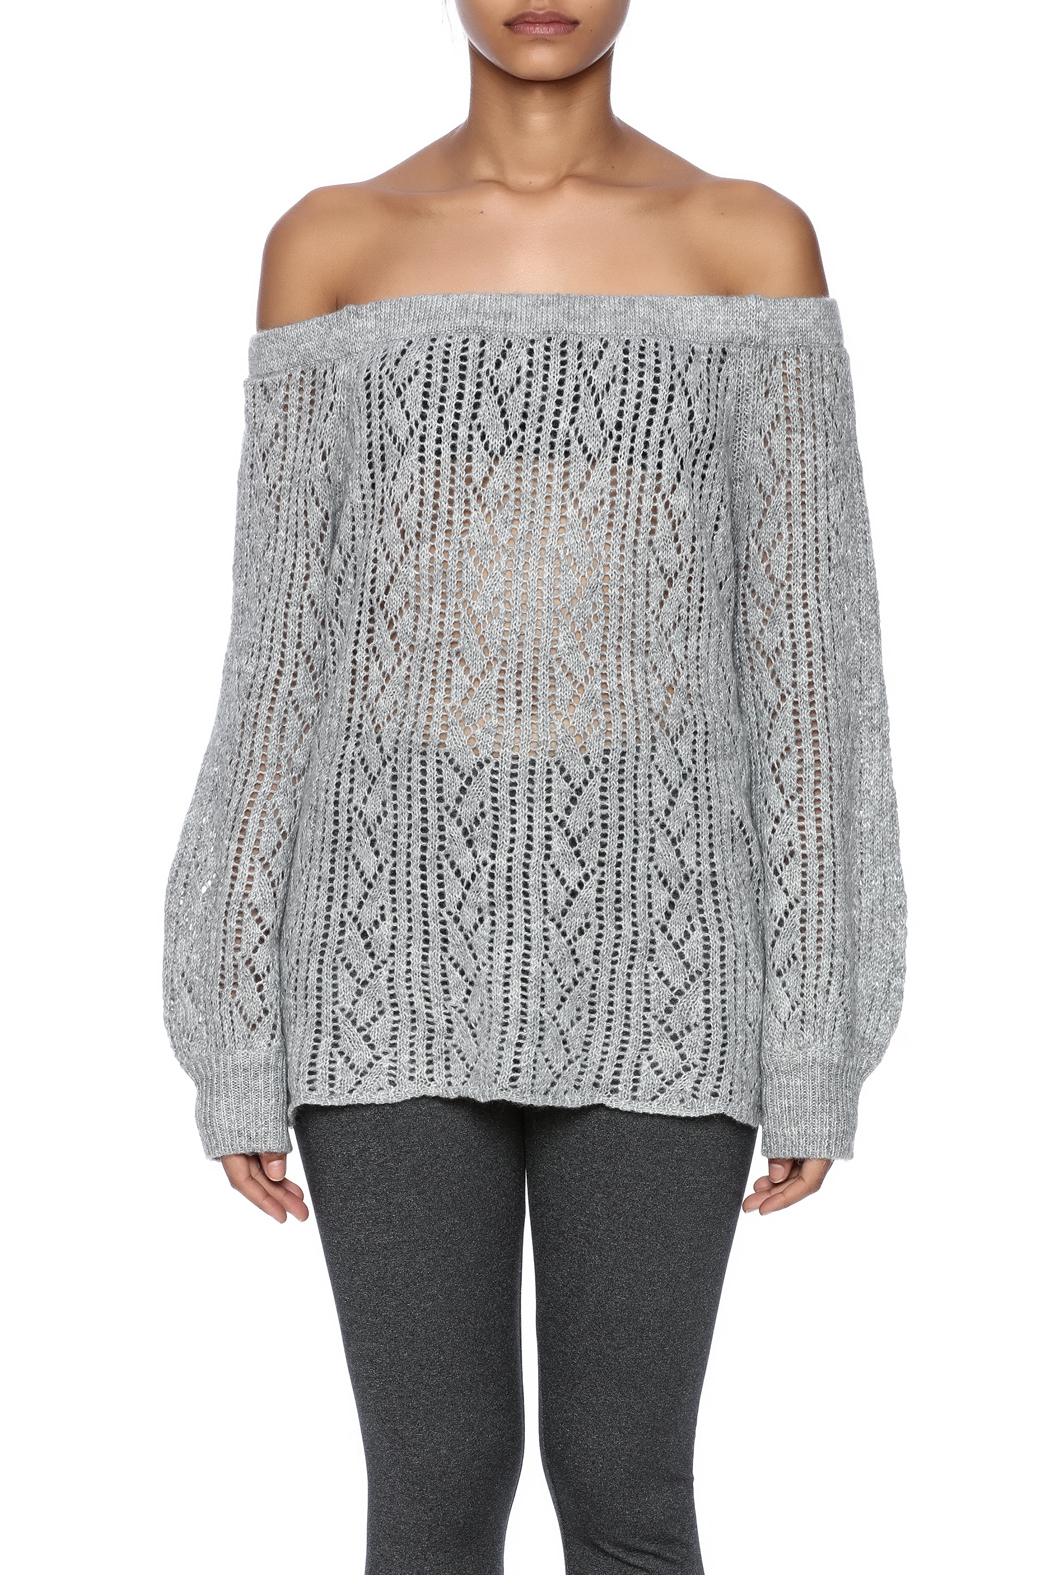 Jealous Tomato Off Shoulder Sweater - Side Cropped Image